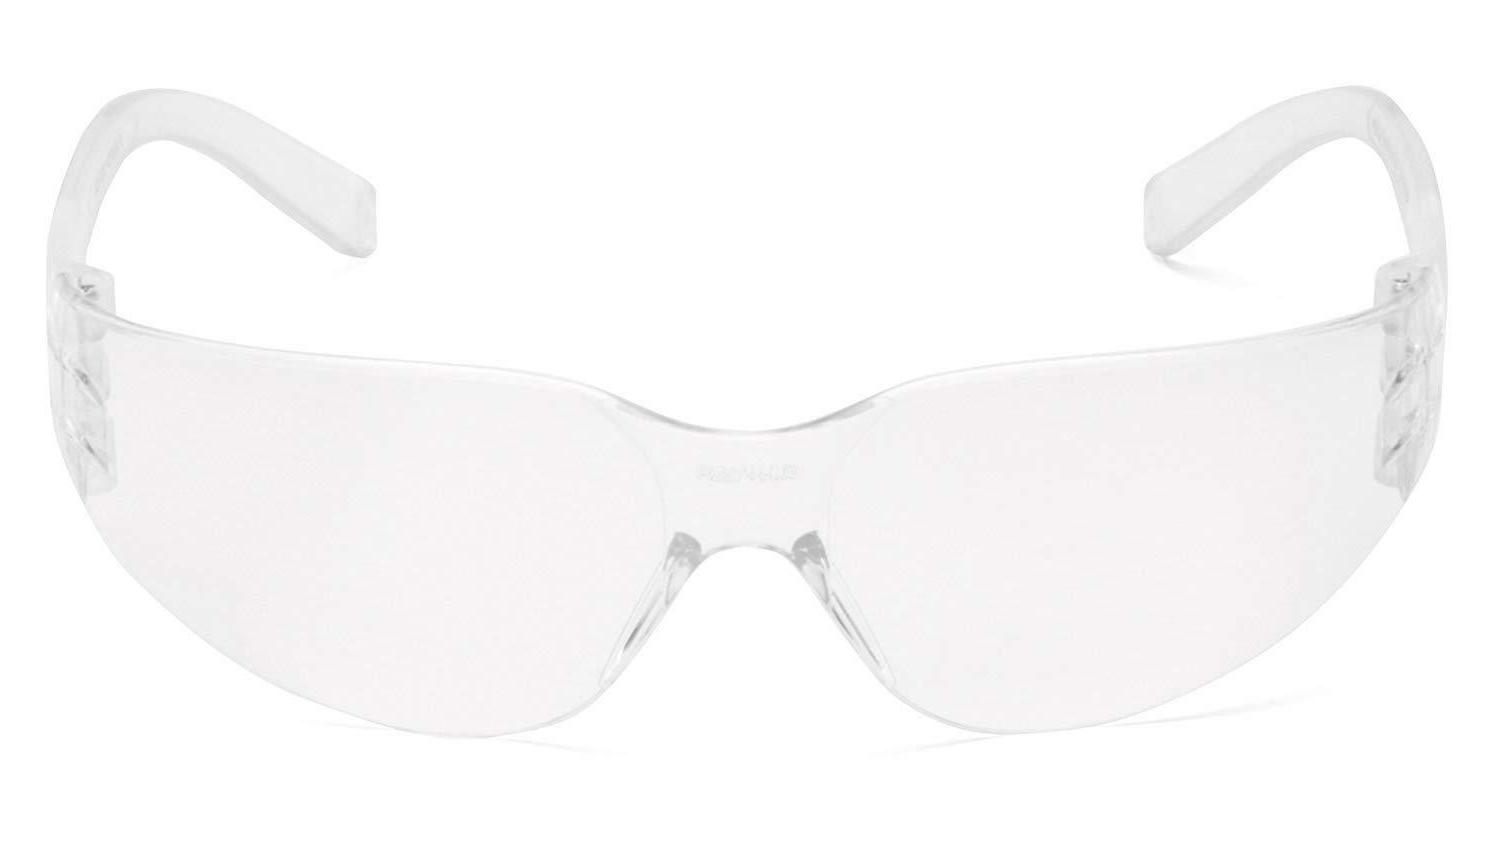 intruder safety eyewear clear frame clear hardcoated